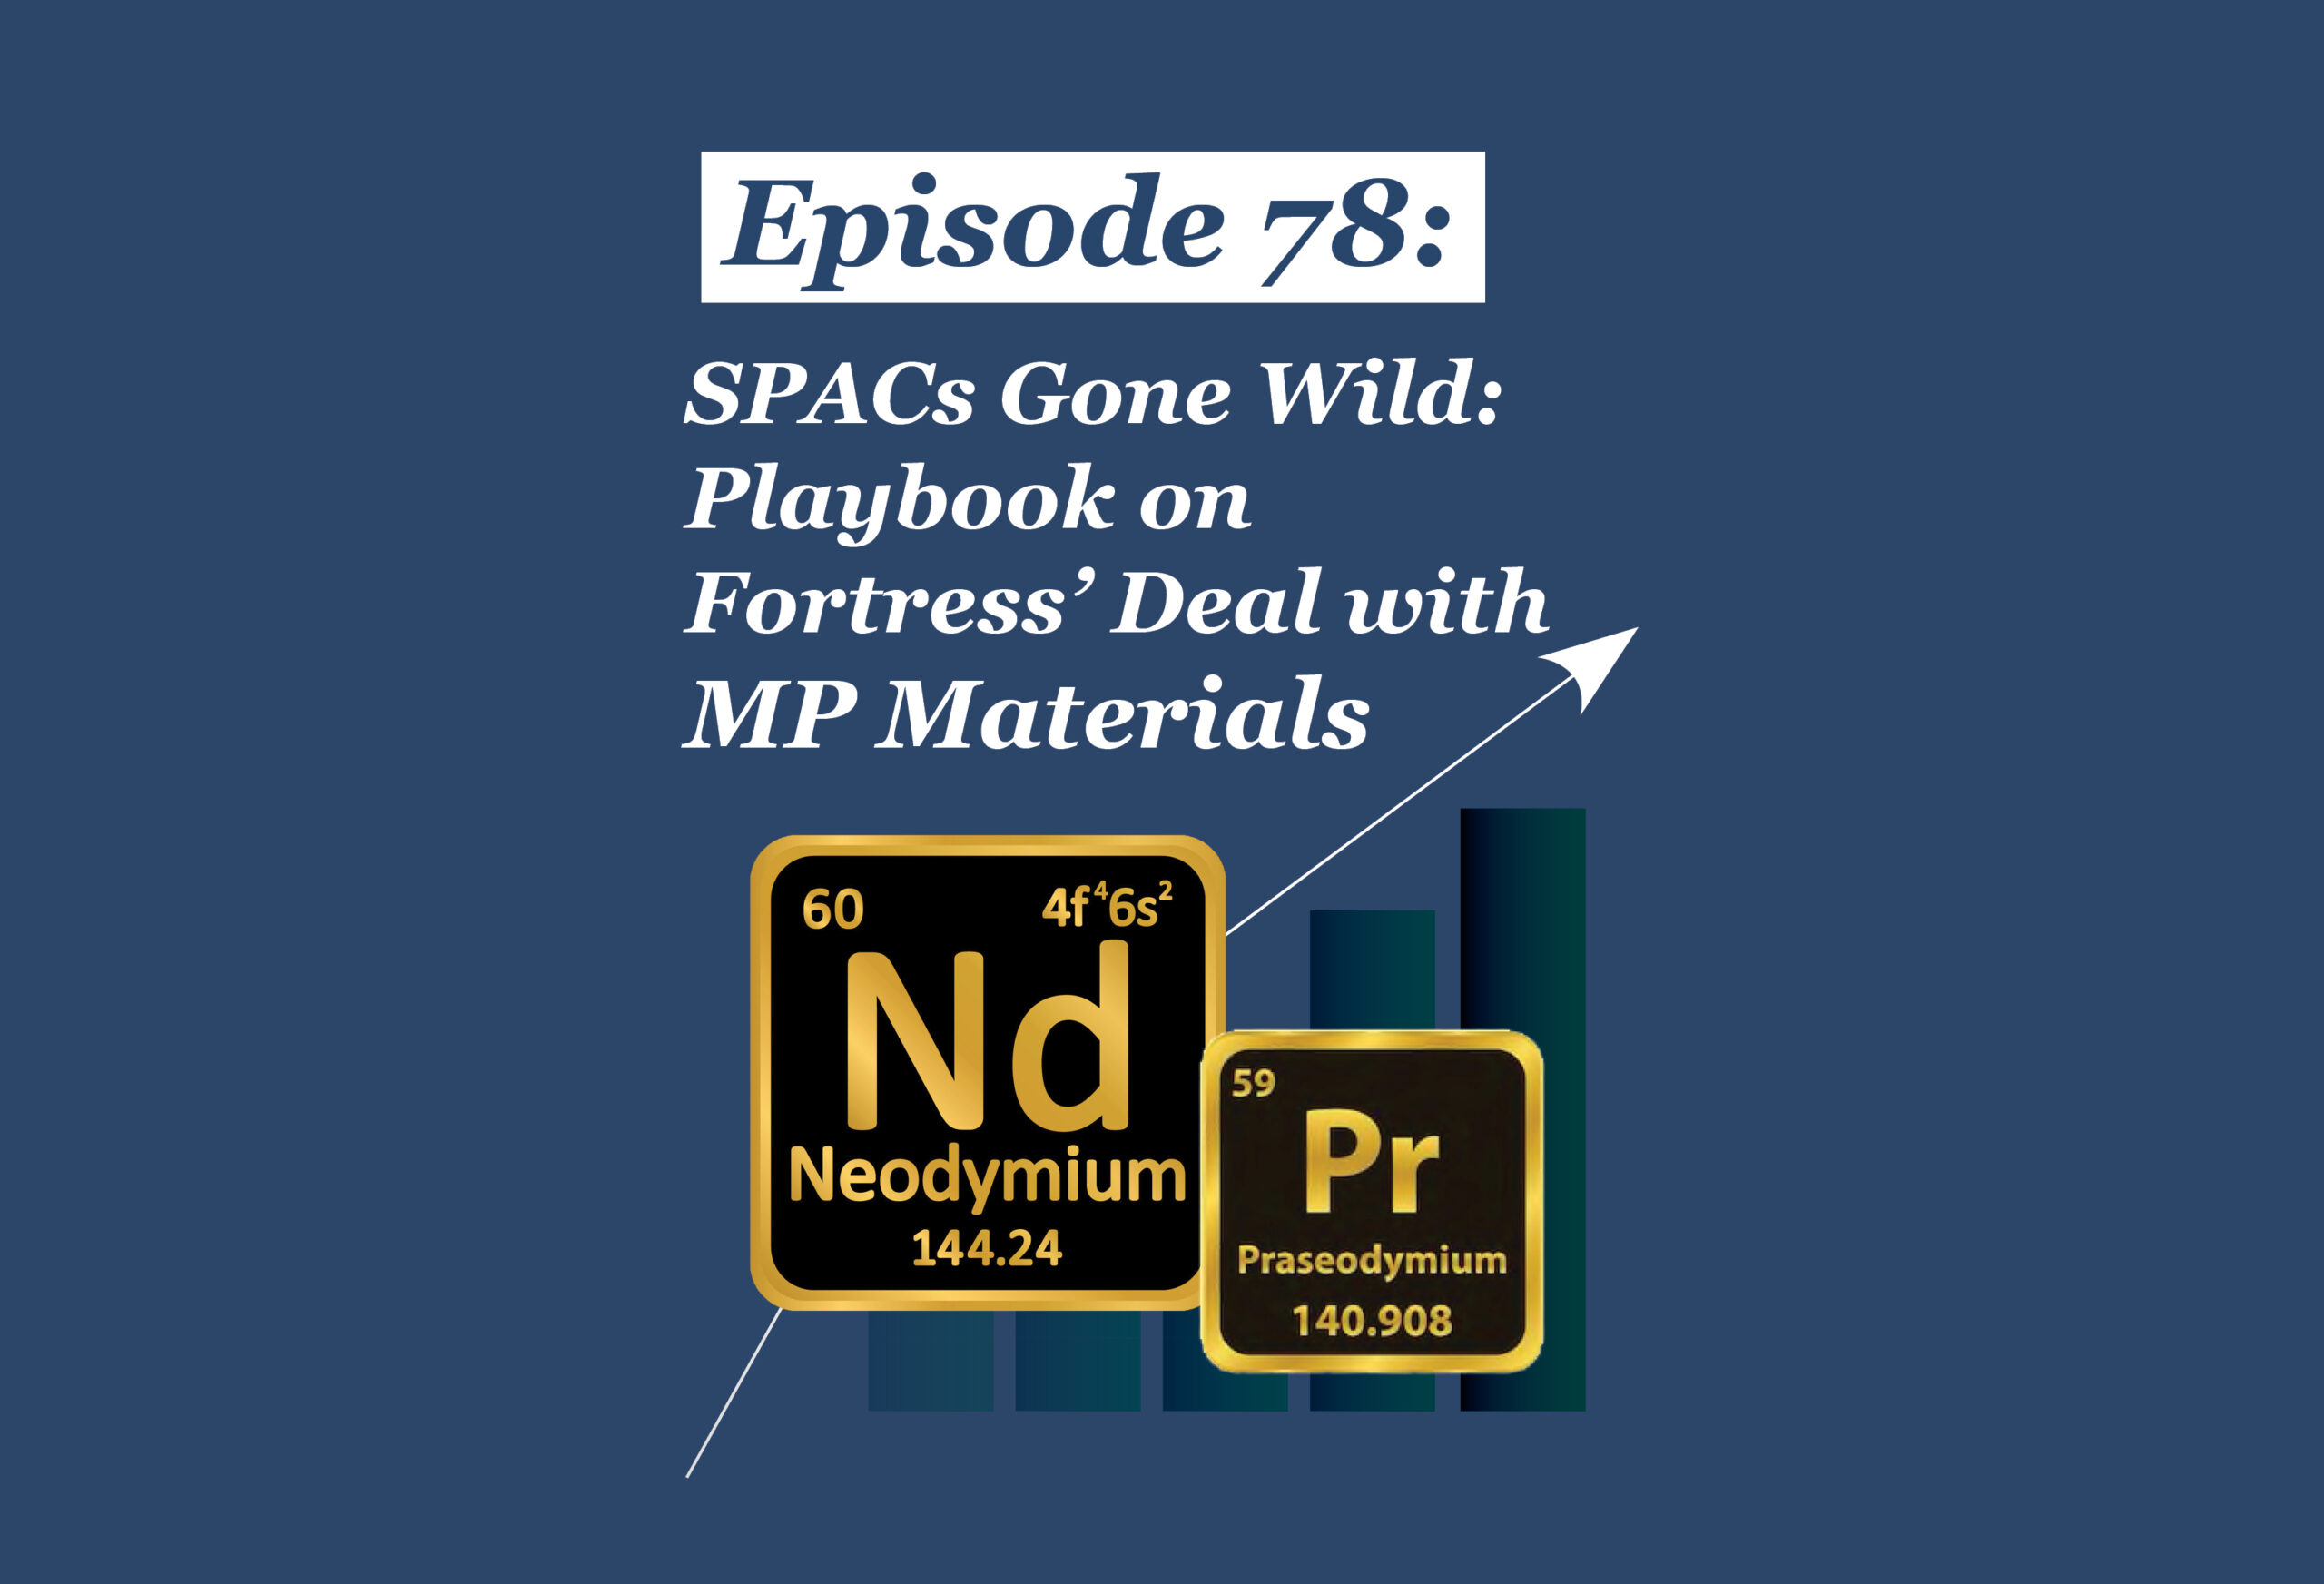 Absolute Return Podcast #78: SPACs Gone Wild: Playbook on Fortress' Deal with MP Materials